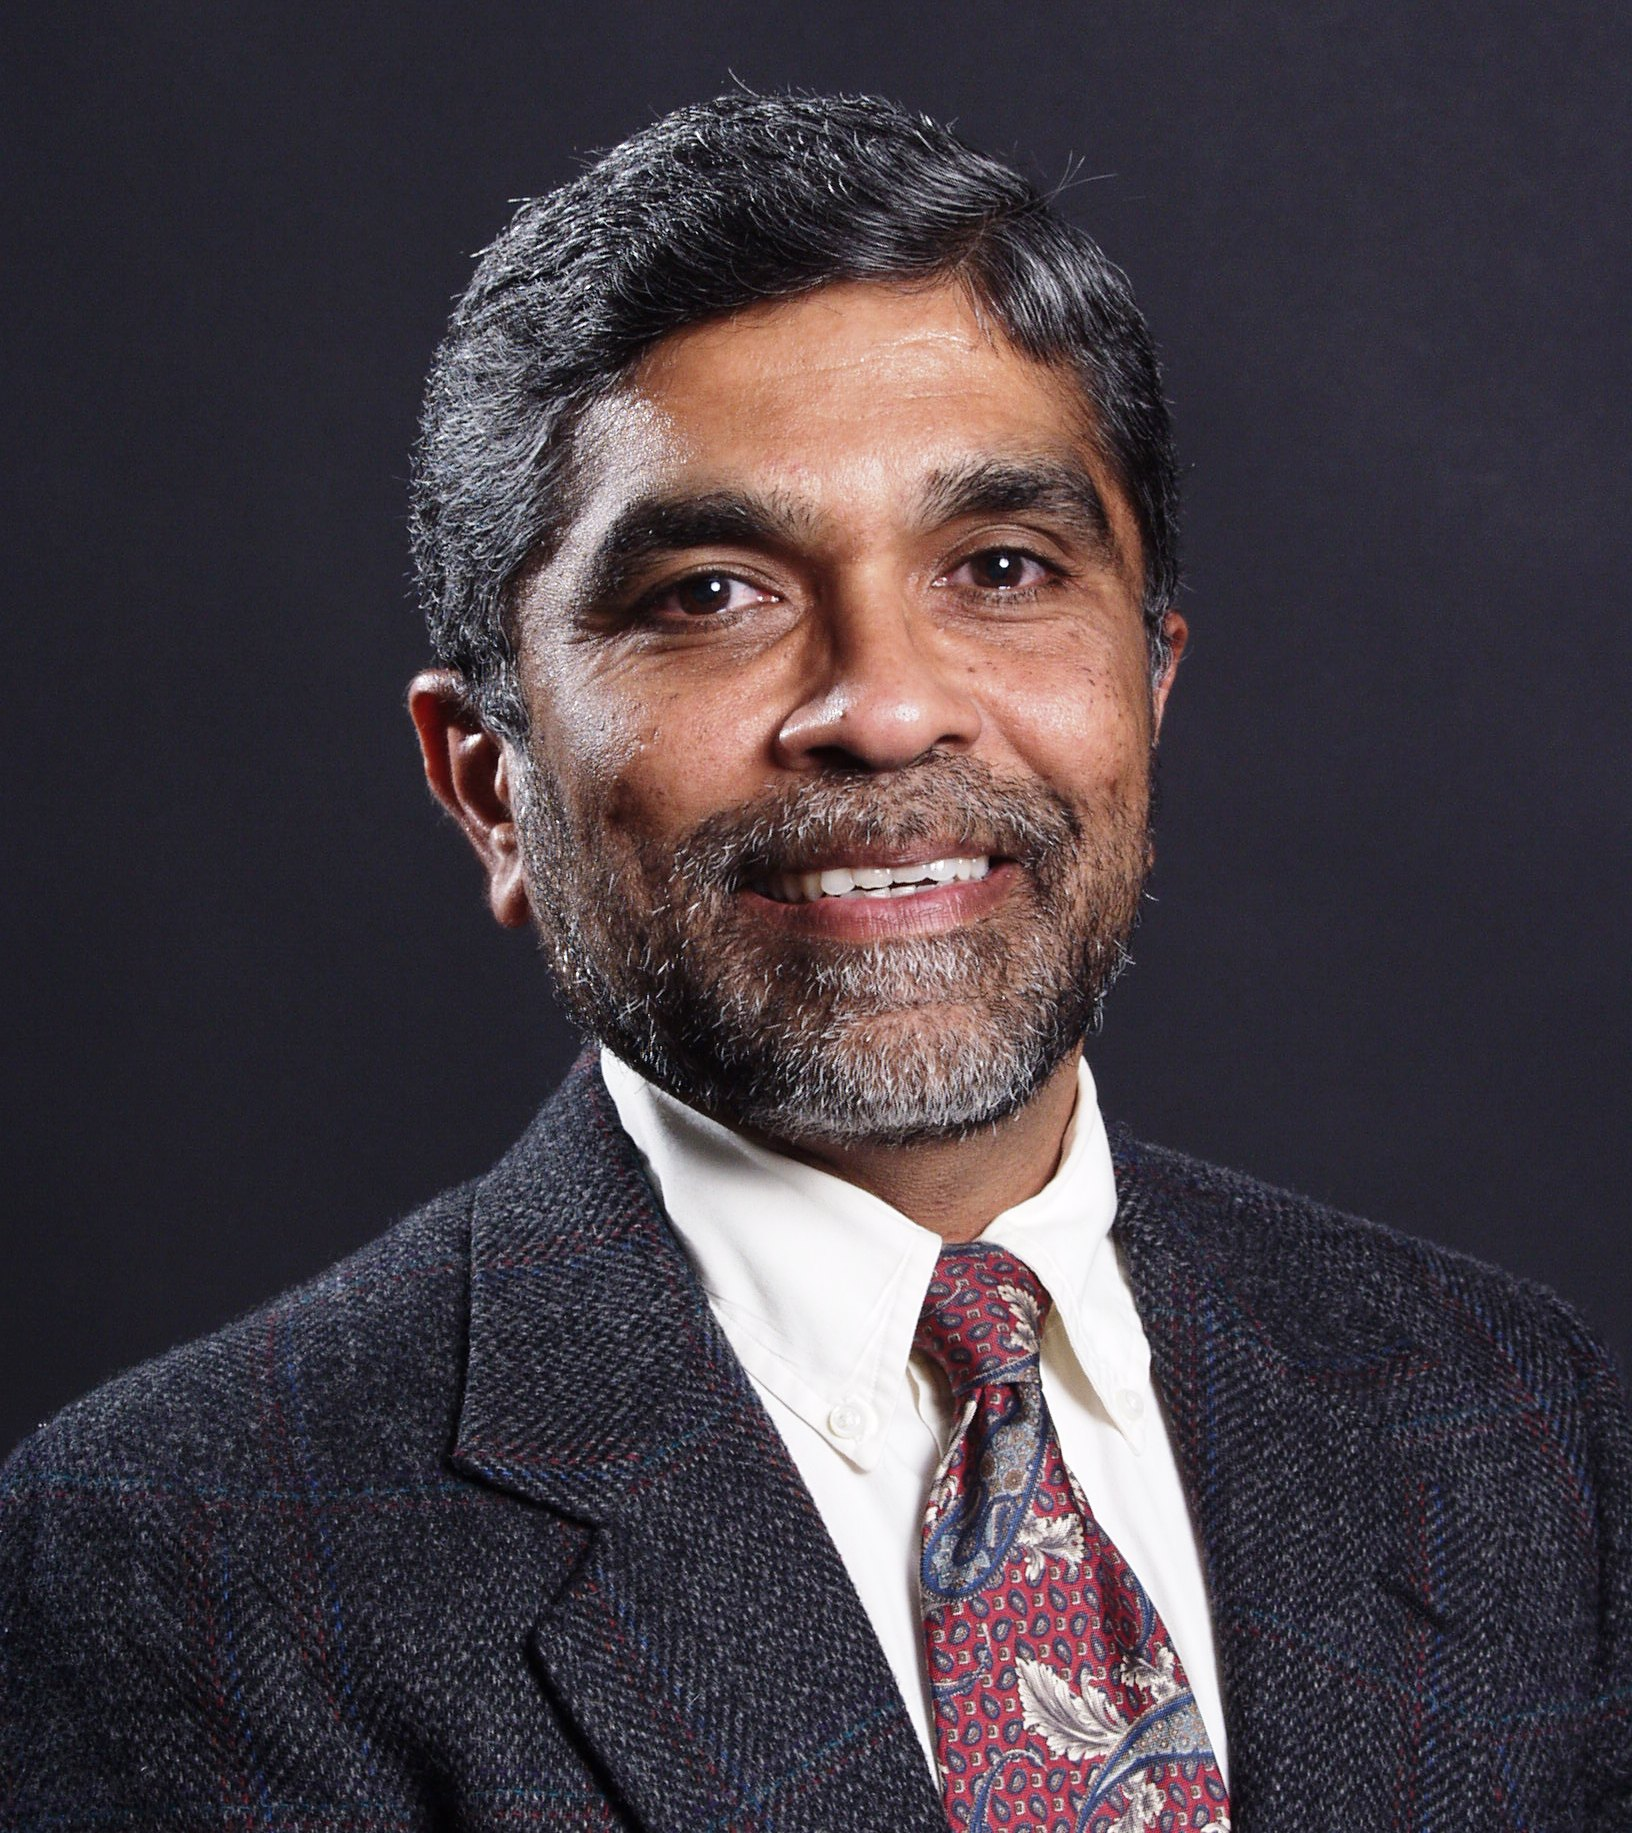 Engineering leadership earns Vittal prestigious honor